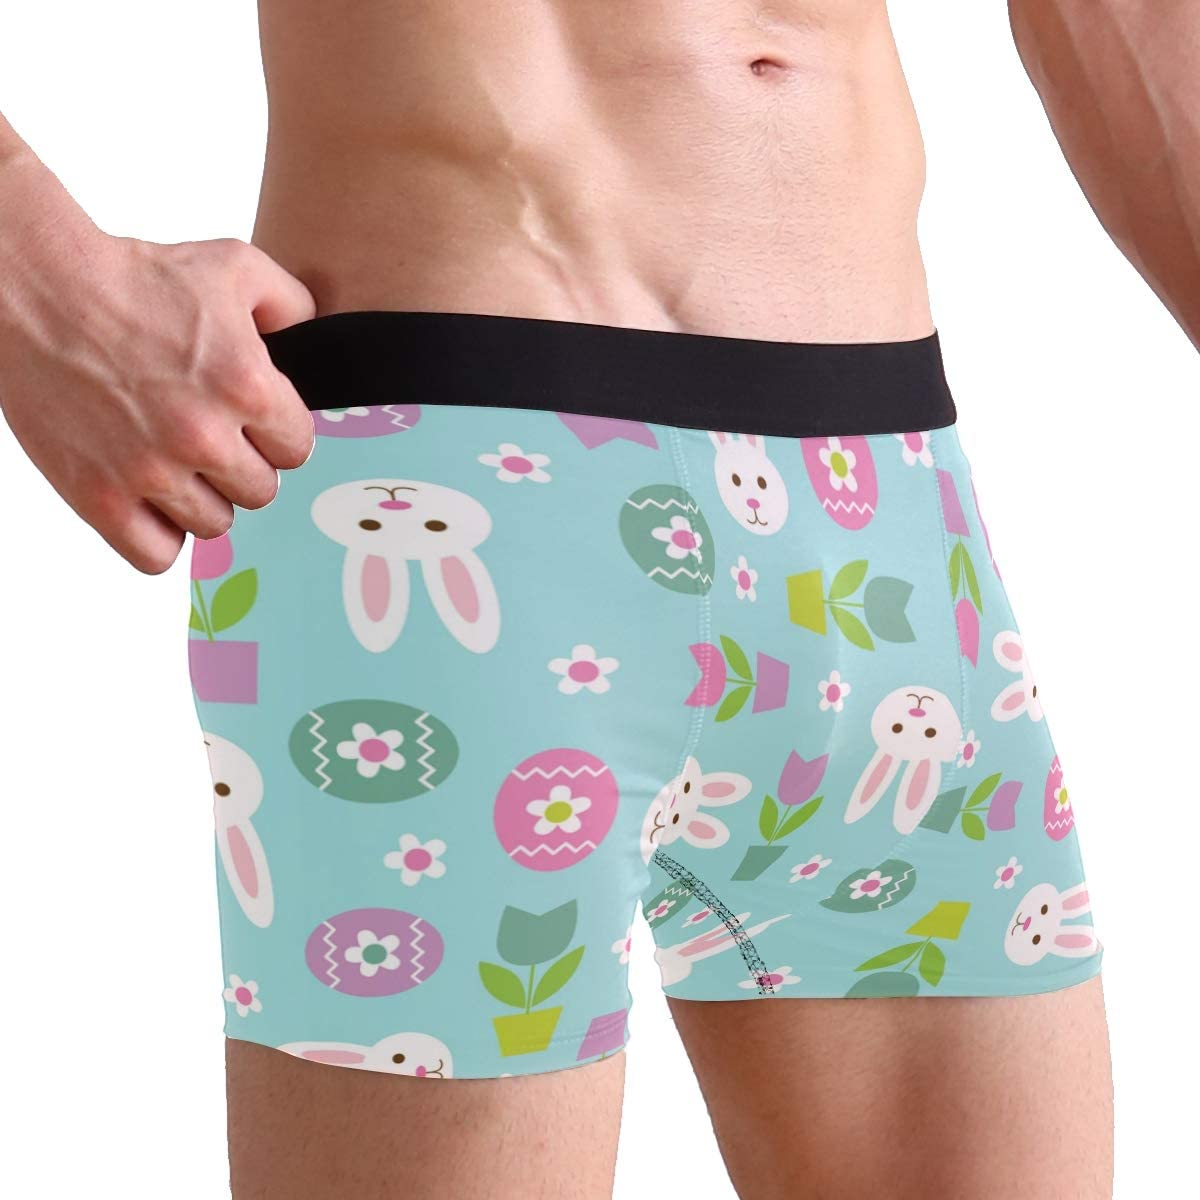 SUABO Men Boxer Briefs Polyester Underwear Men 2 Pack Boxer Briefs with Easter Bunny Pattern